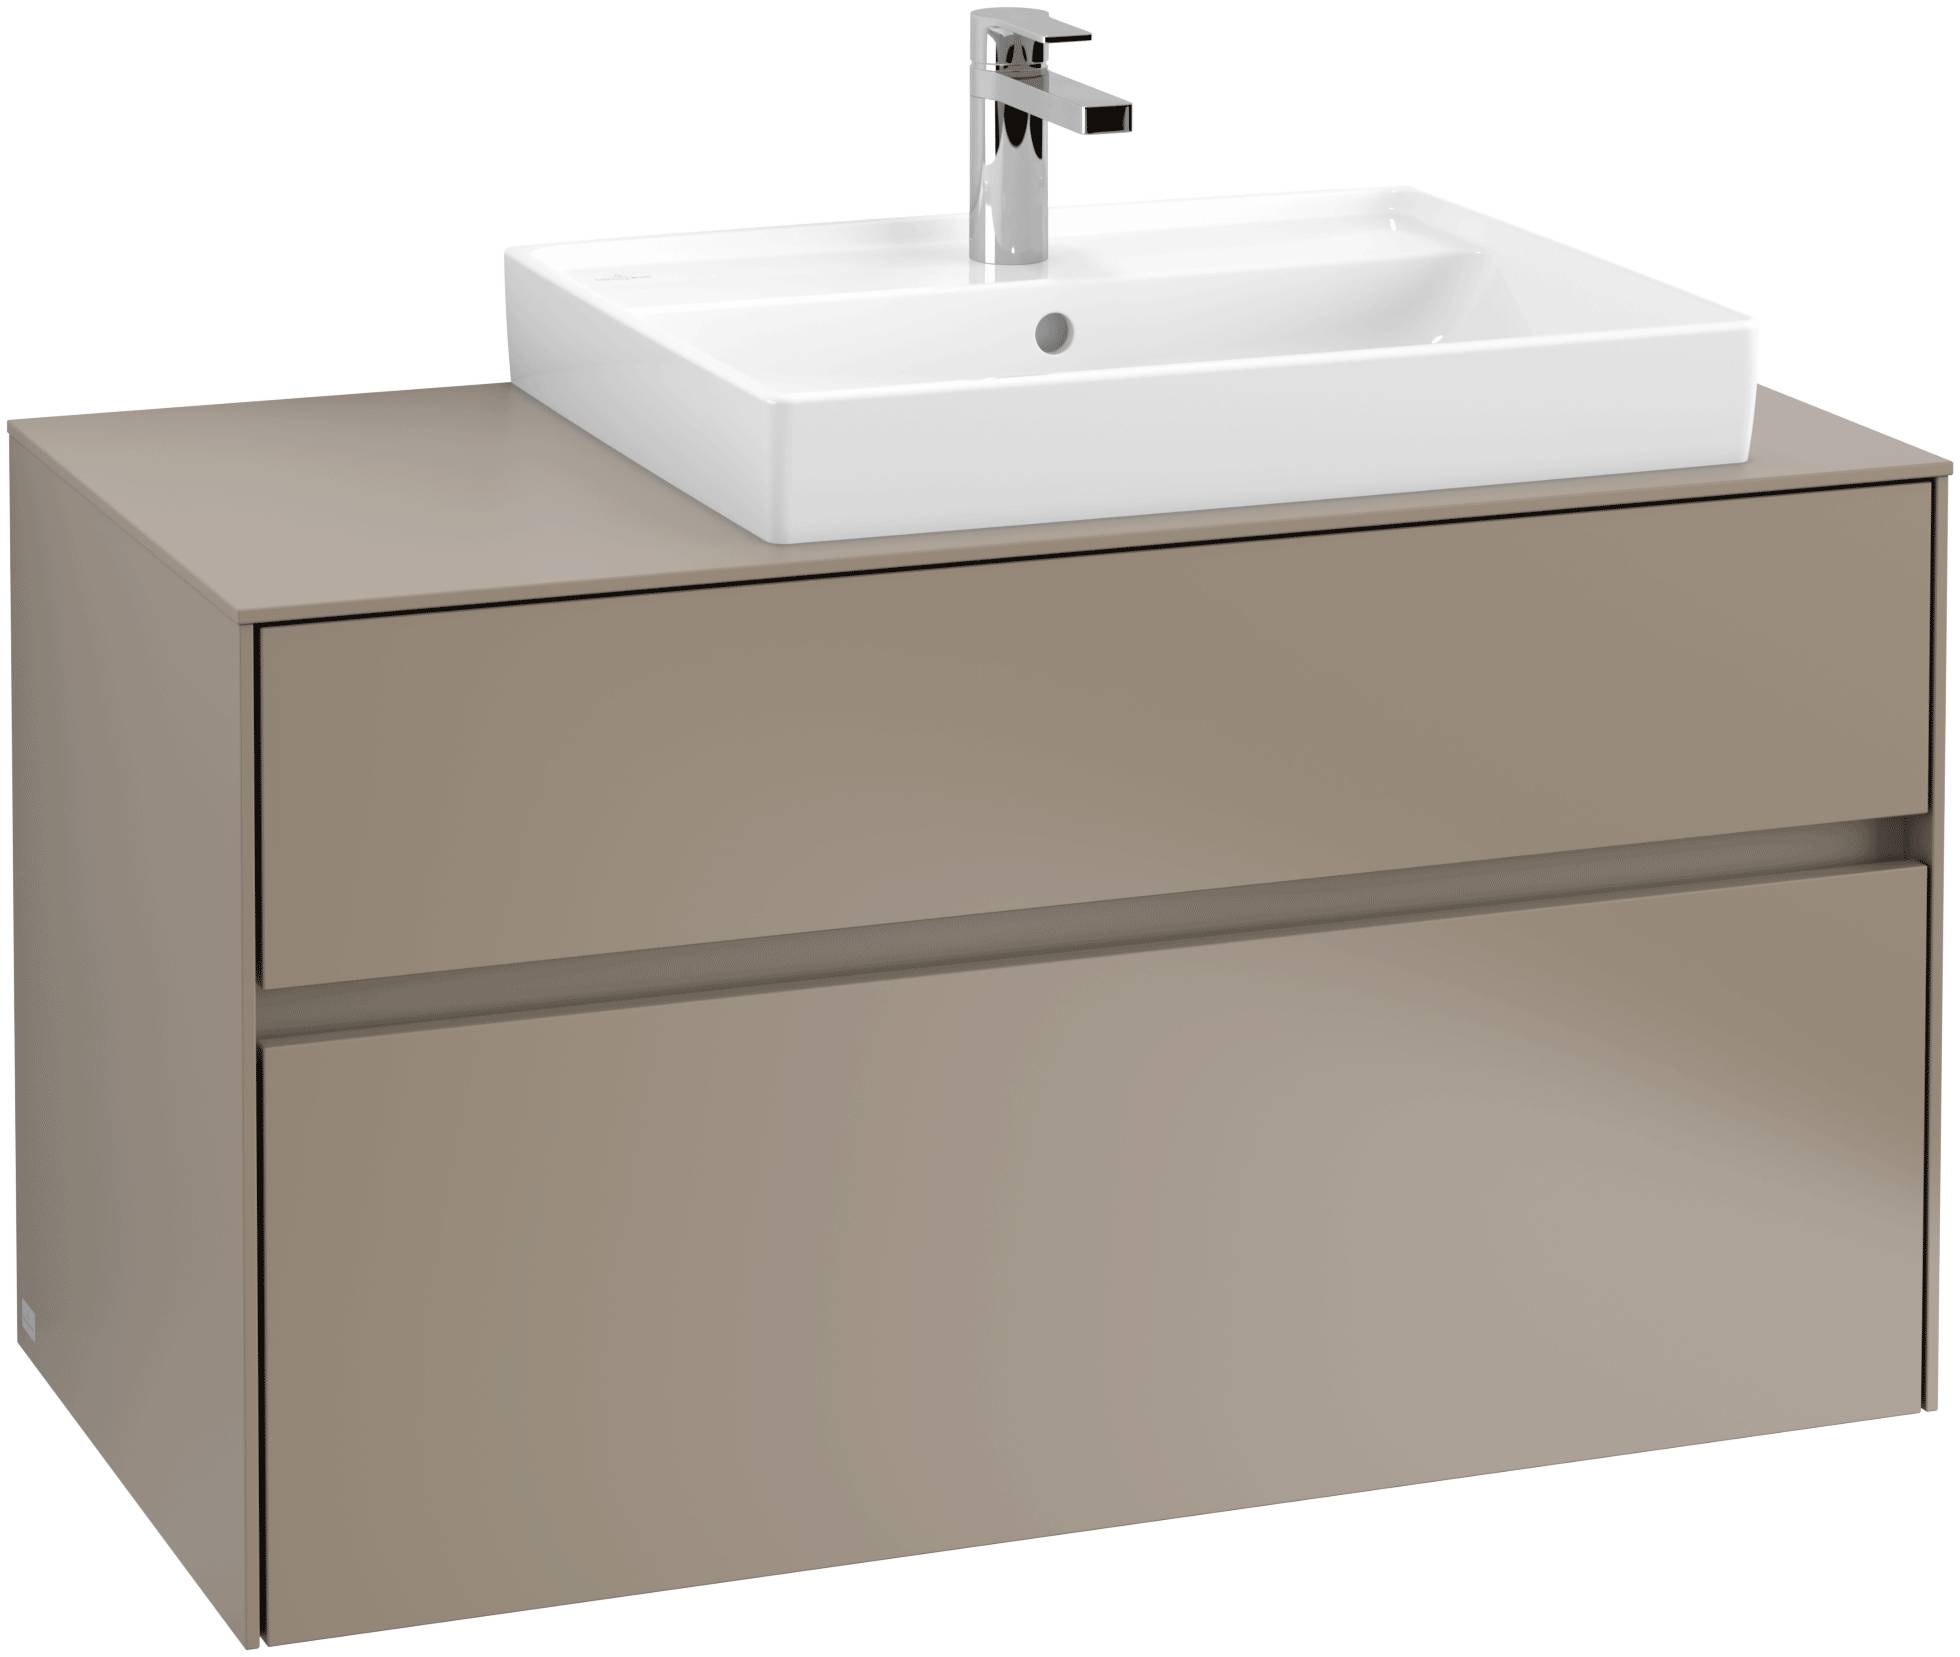 Villeroy & Boch Villeroy & Boch Collaro - Meuble sous lavabo with 2 drawers & 1 cut-out right 1000 x 548 x 500mm gris truffe